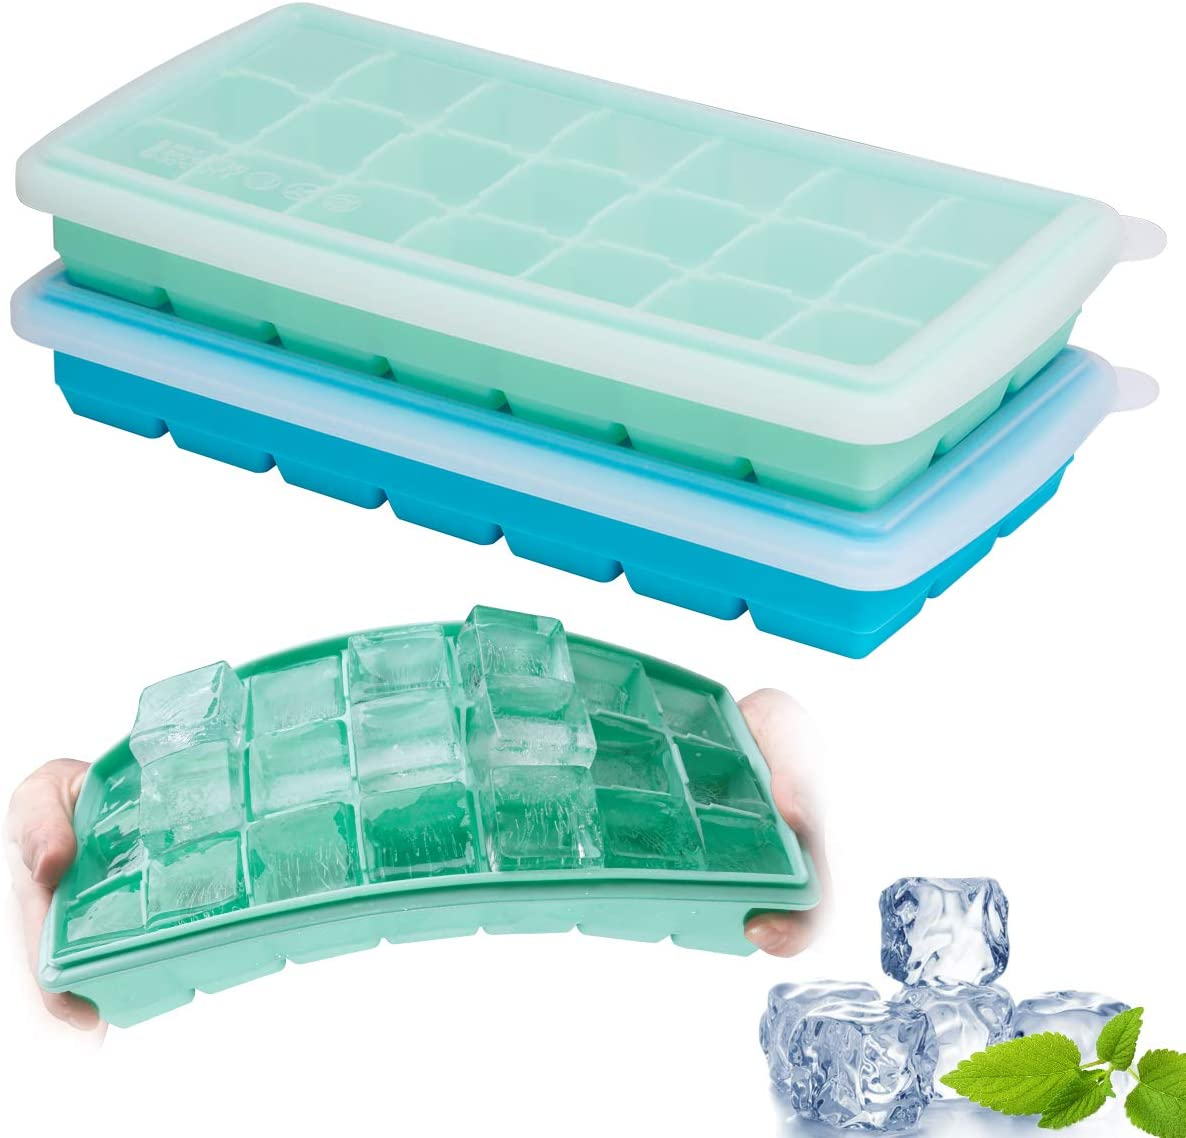 Ice Cube Trays, GDREAMT 2 Pack Silicone Ice Tray with Spill-Resistant Removable Lid Easy Release Flexible 21 Ice Cube Molds for Cocktail, Whiskey, Baby Food, Chocolate, BPA Free